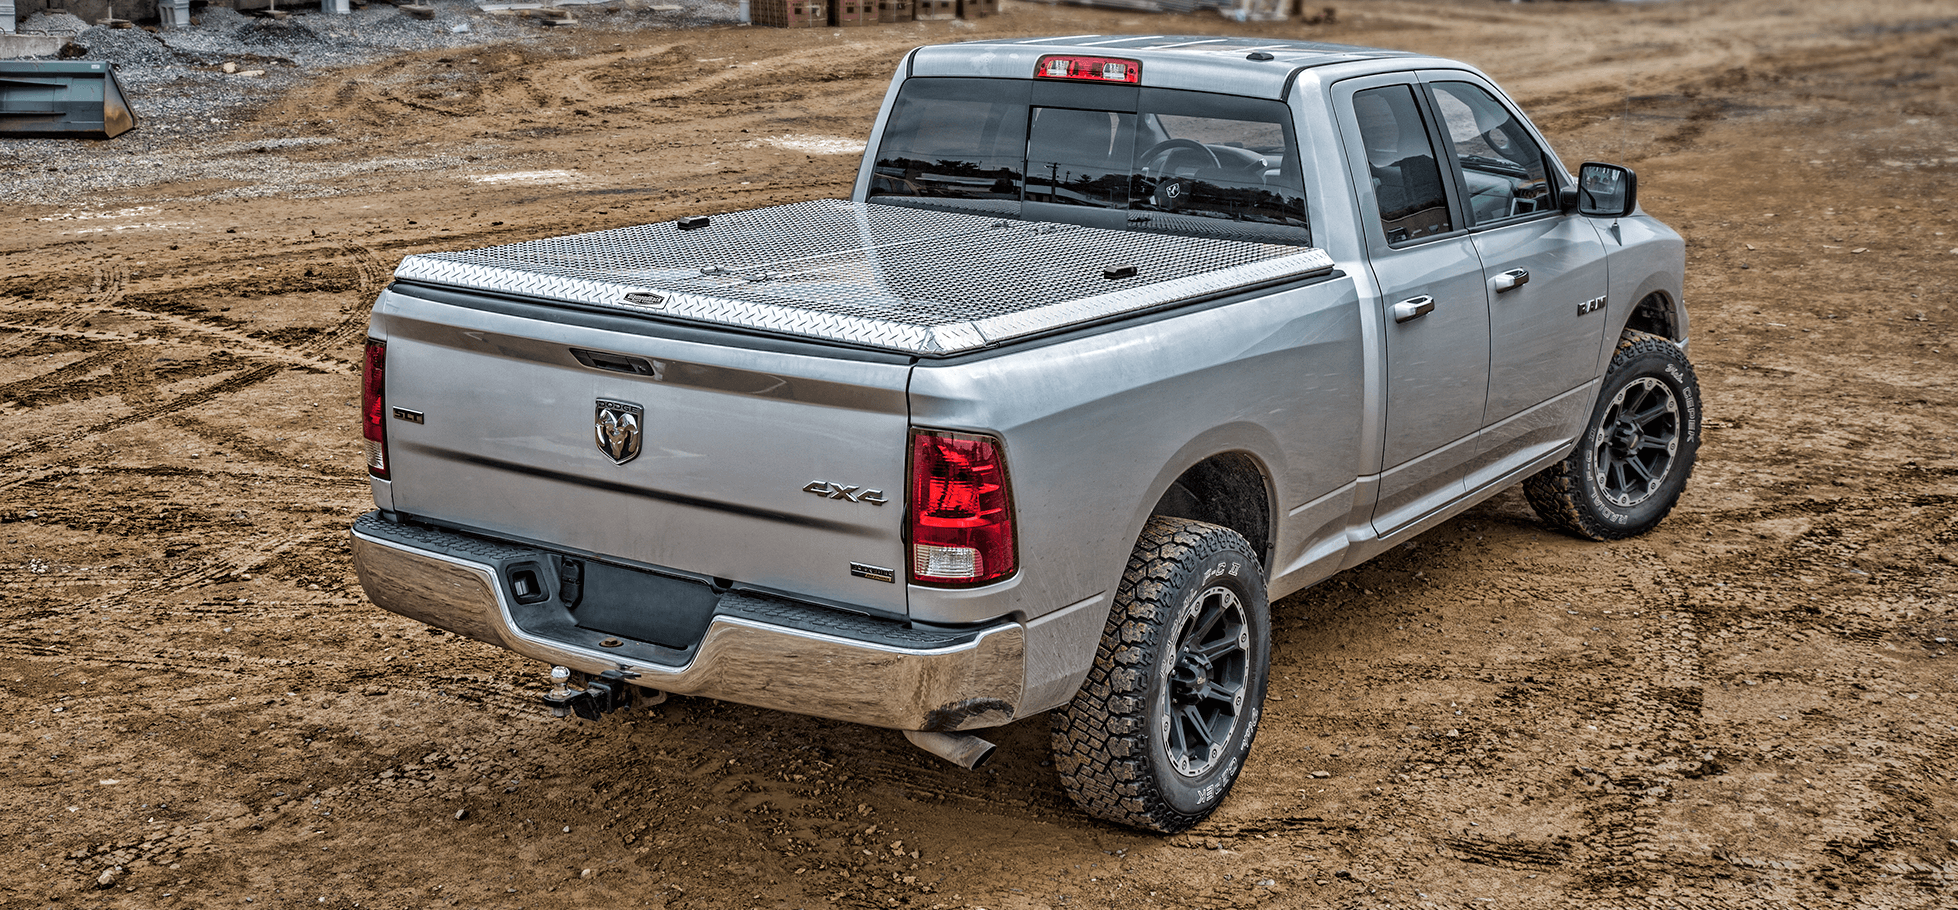 180 aluminum tonneau cover at construction site